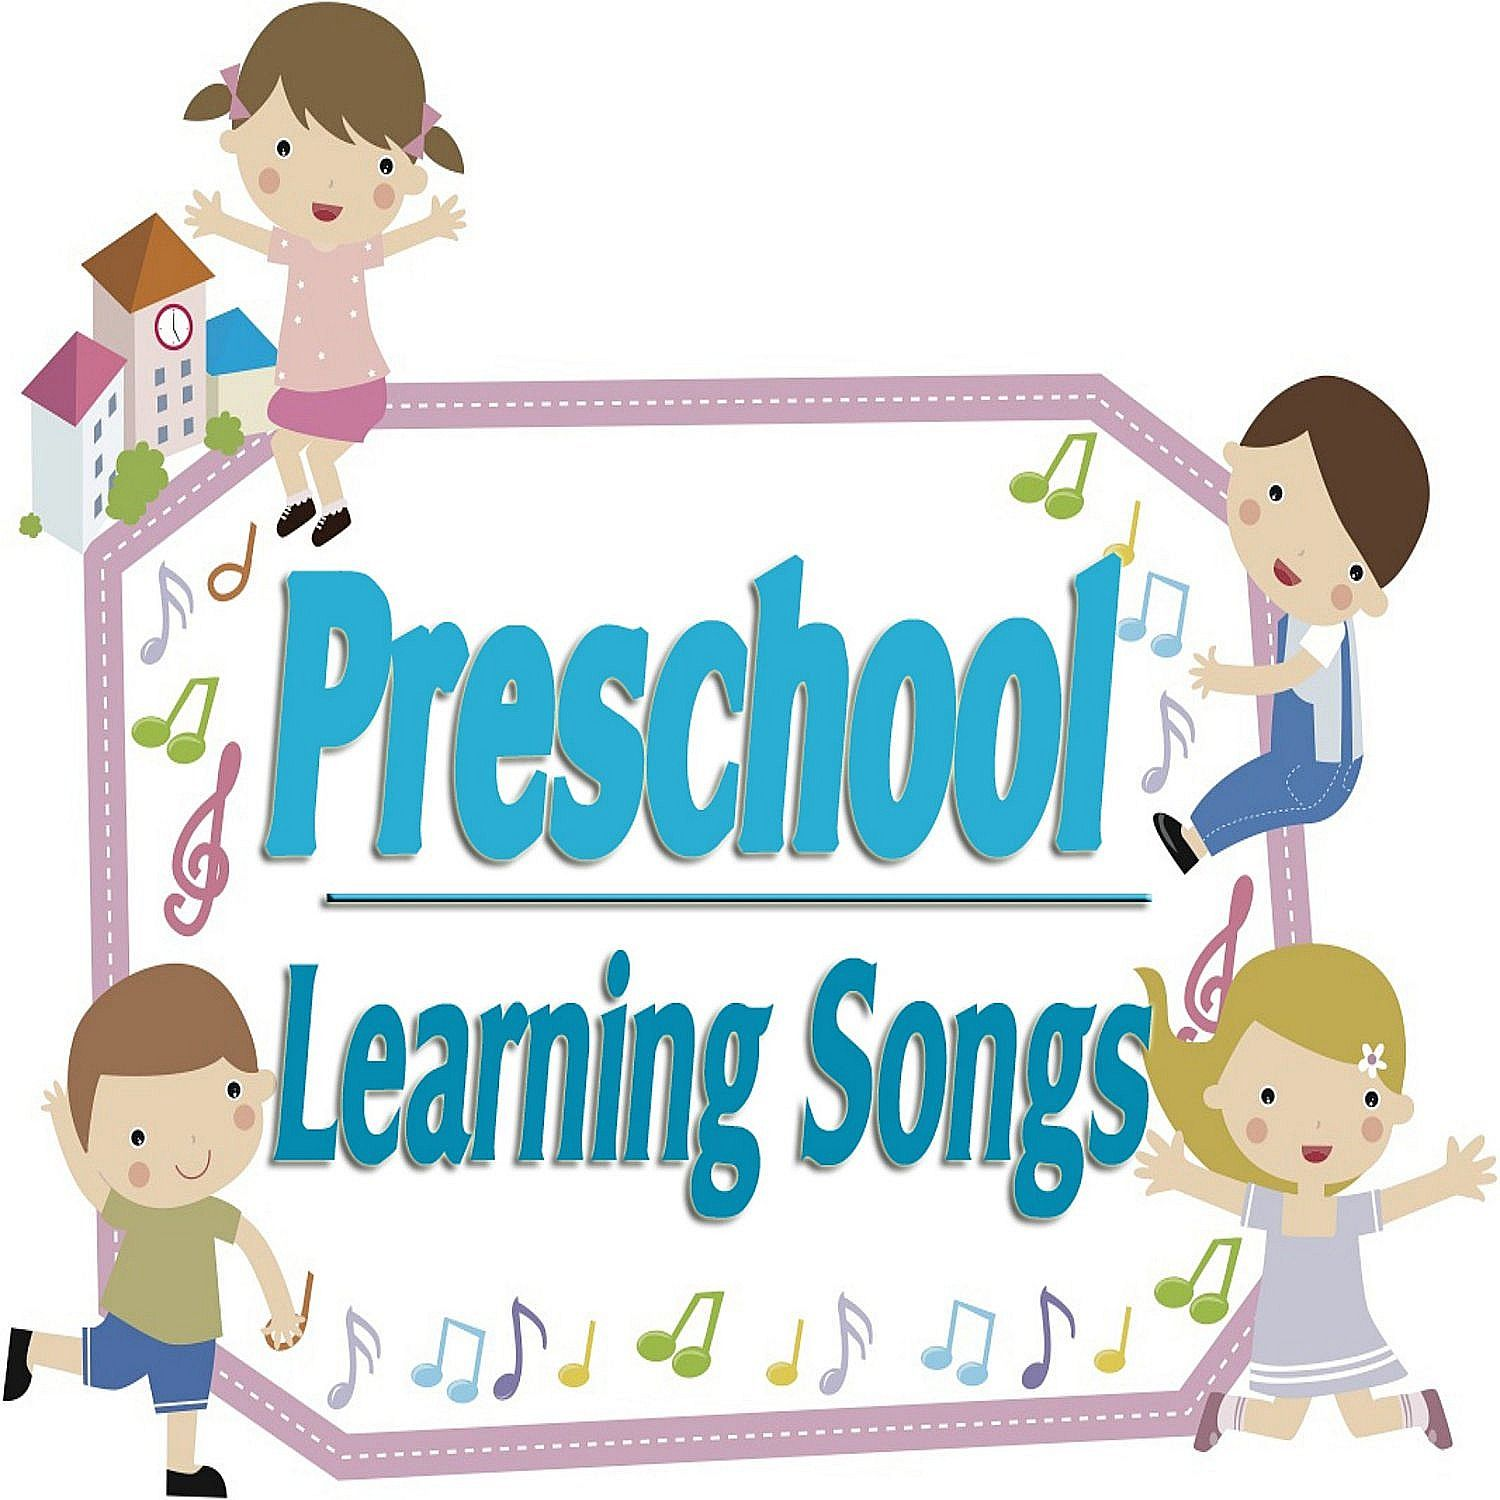 Preschool Learning Songs Help Preschoolers Learn Their Abcs Numbers Colors Shapes Days Of